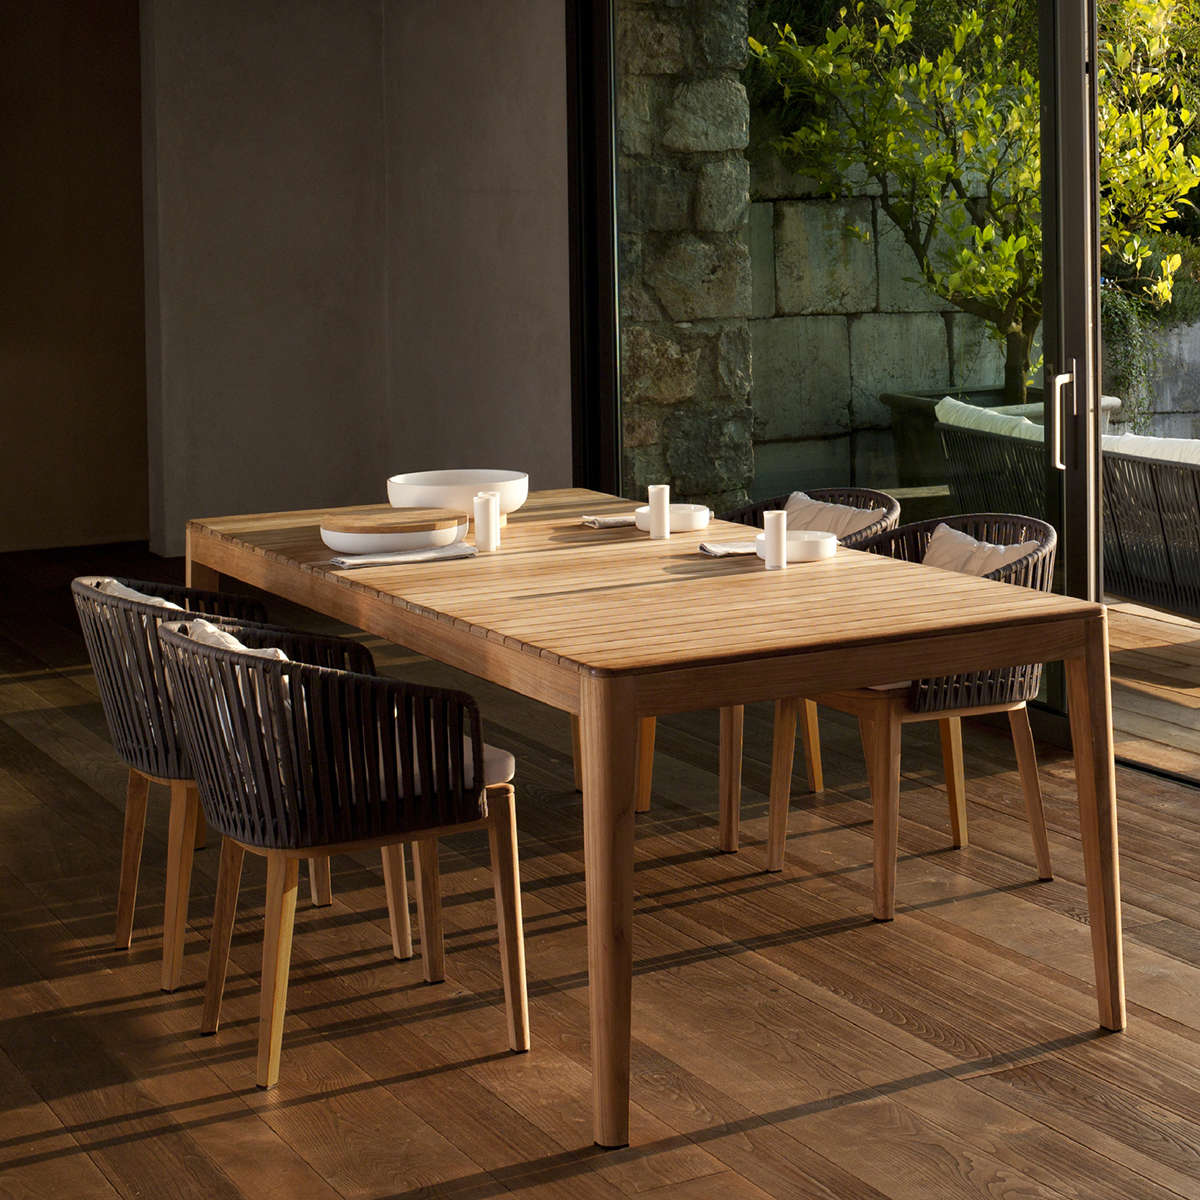 Tribu Mood Dining Chair Hr 3